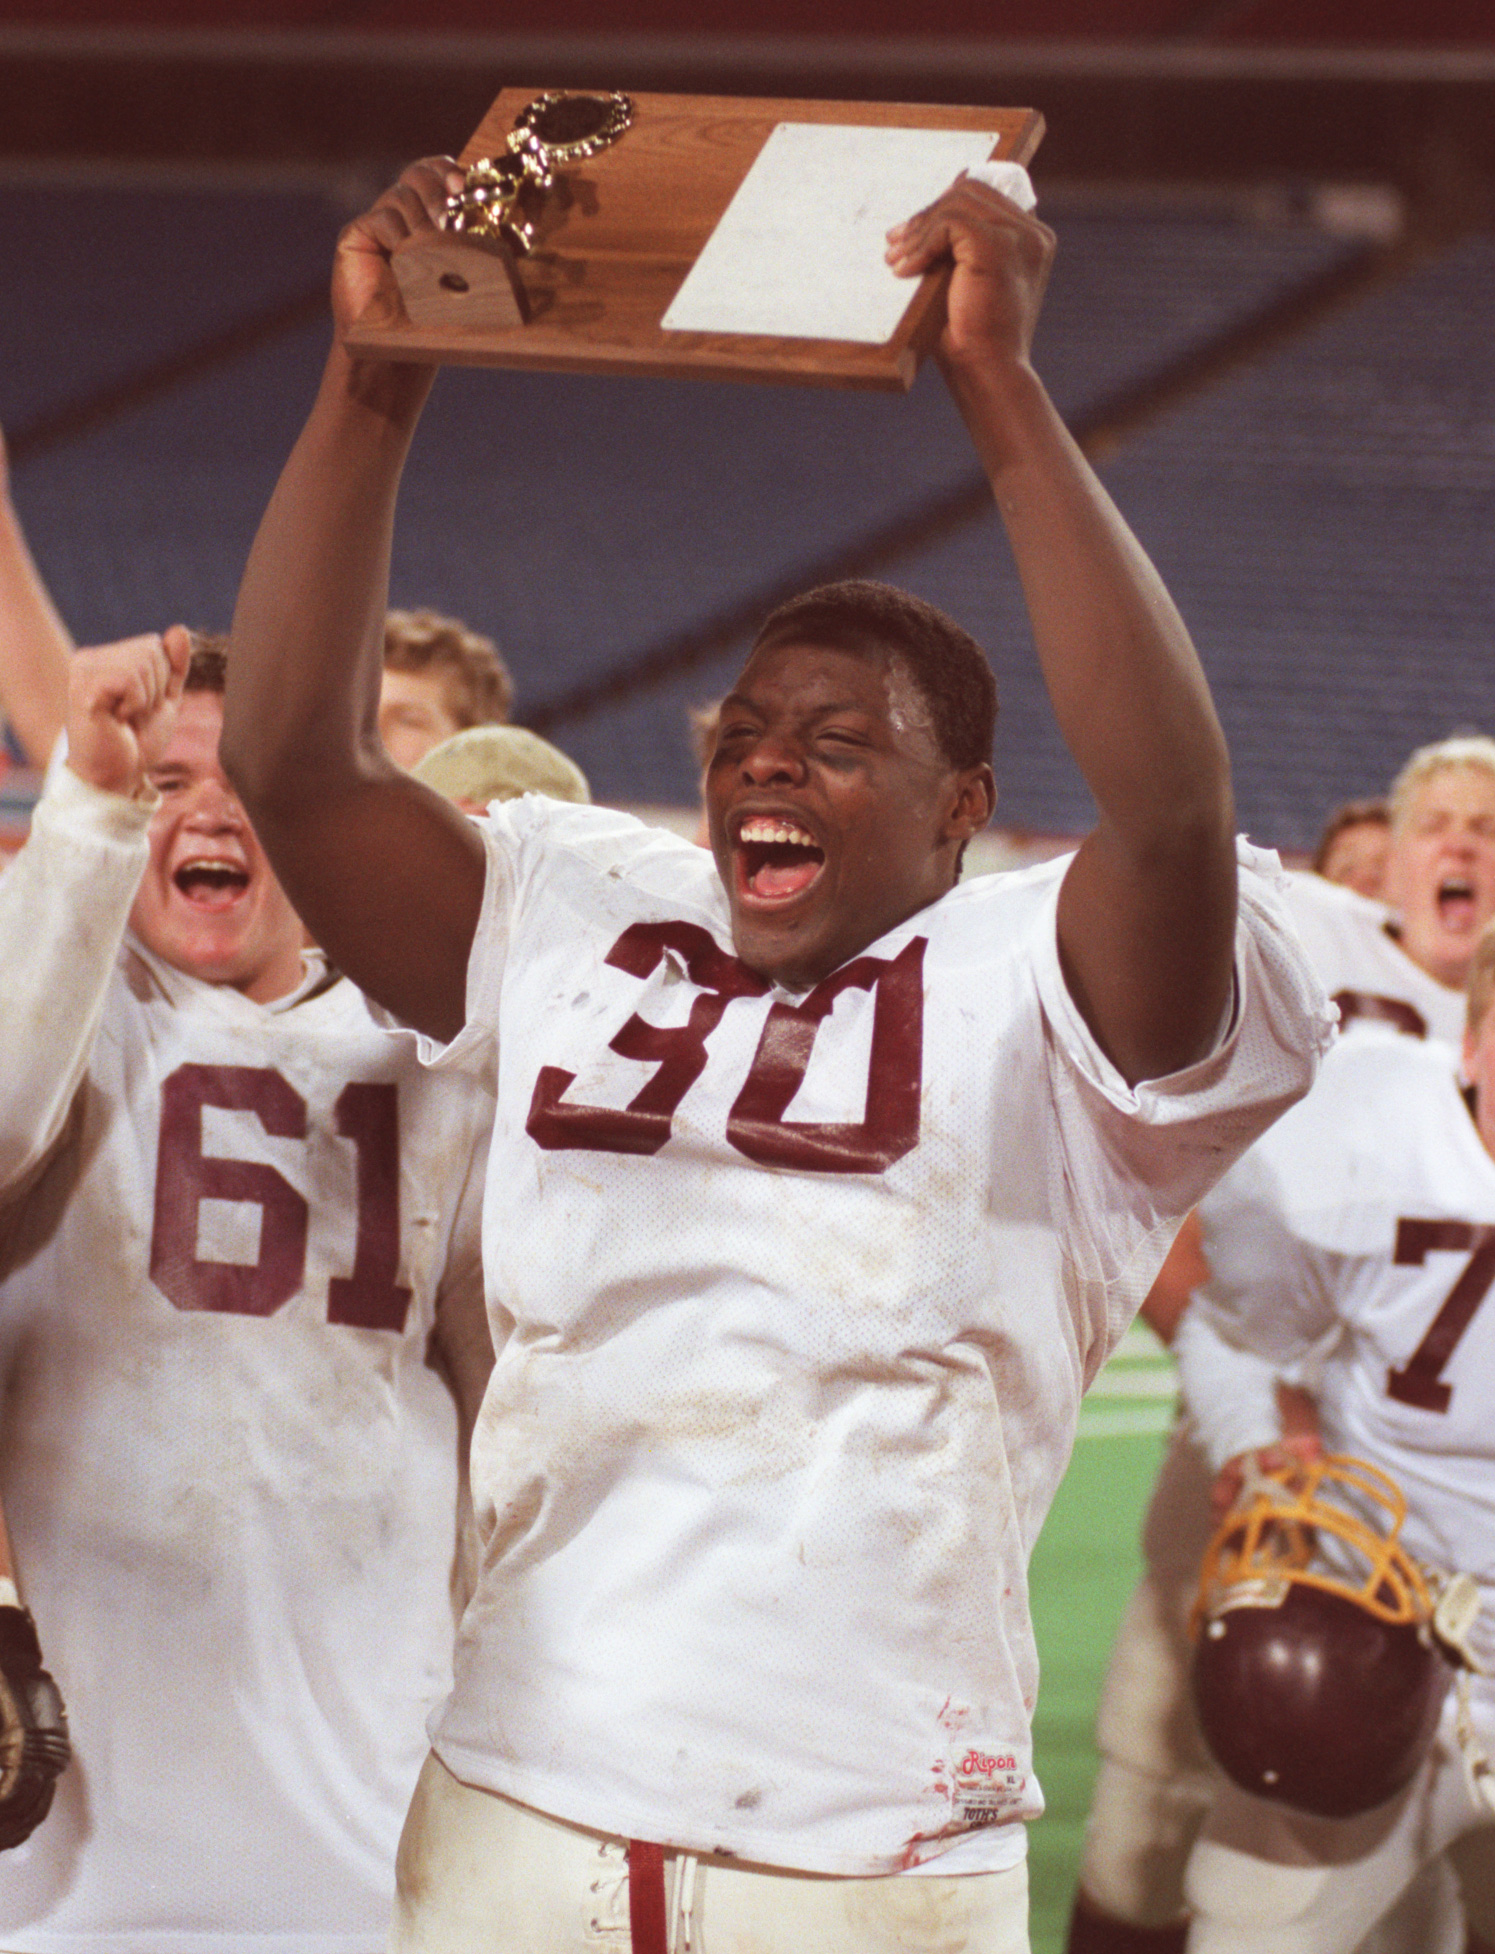 Clymer fullback Jehuu Caulcrick celebrates with teammates after winning the Section VI Class D title at Ralph Wilson Stadium. (Harry Scull Jr./Buffalo News file photo